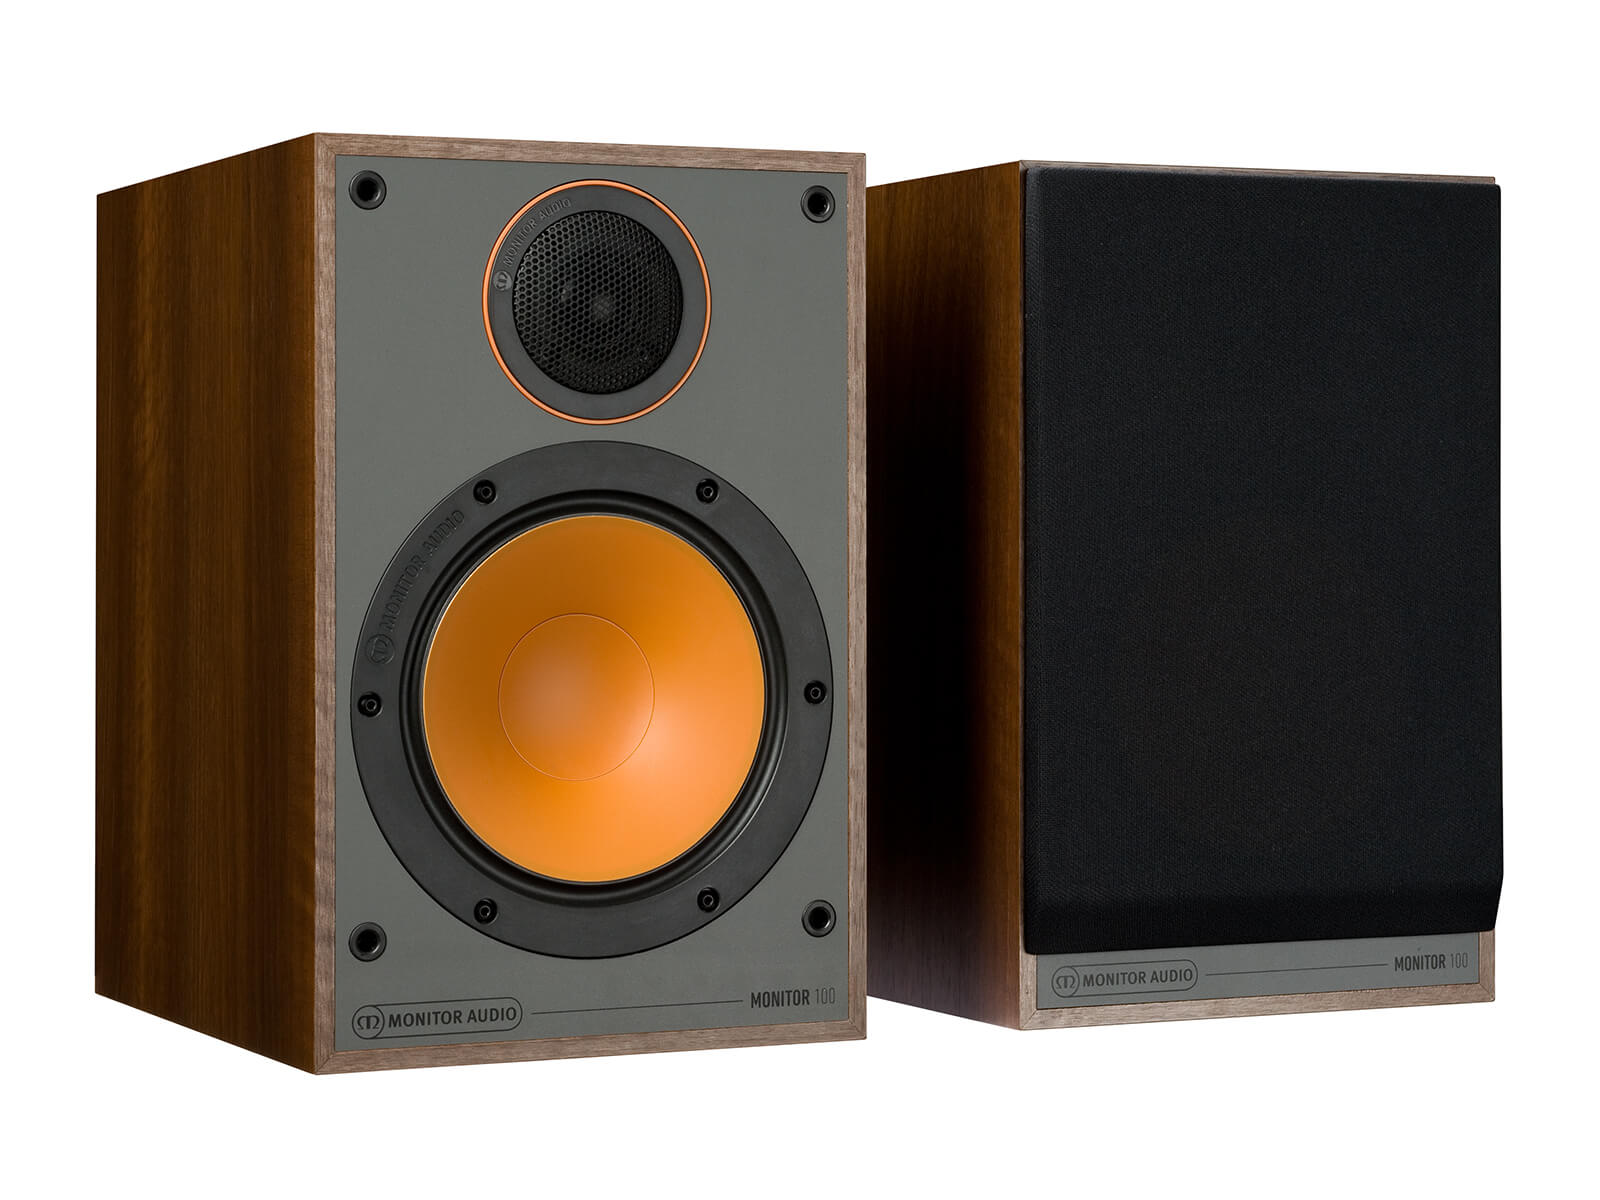 Monitor 100, bookshelf speakers, with and without grille in a walnut vinyl finish.